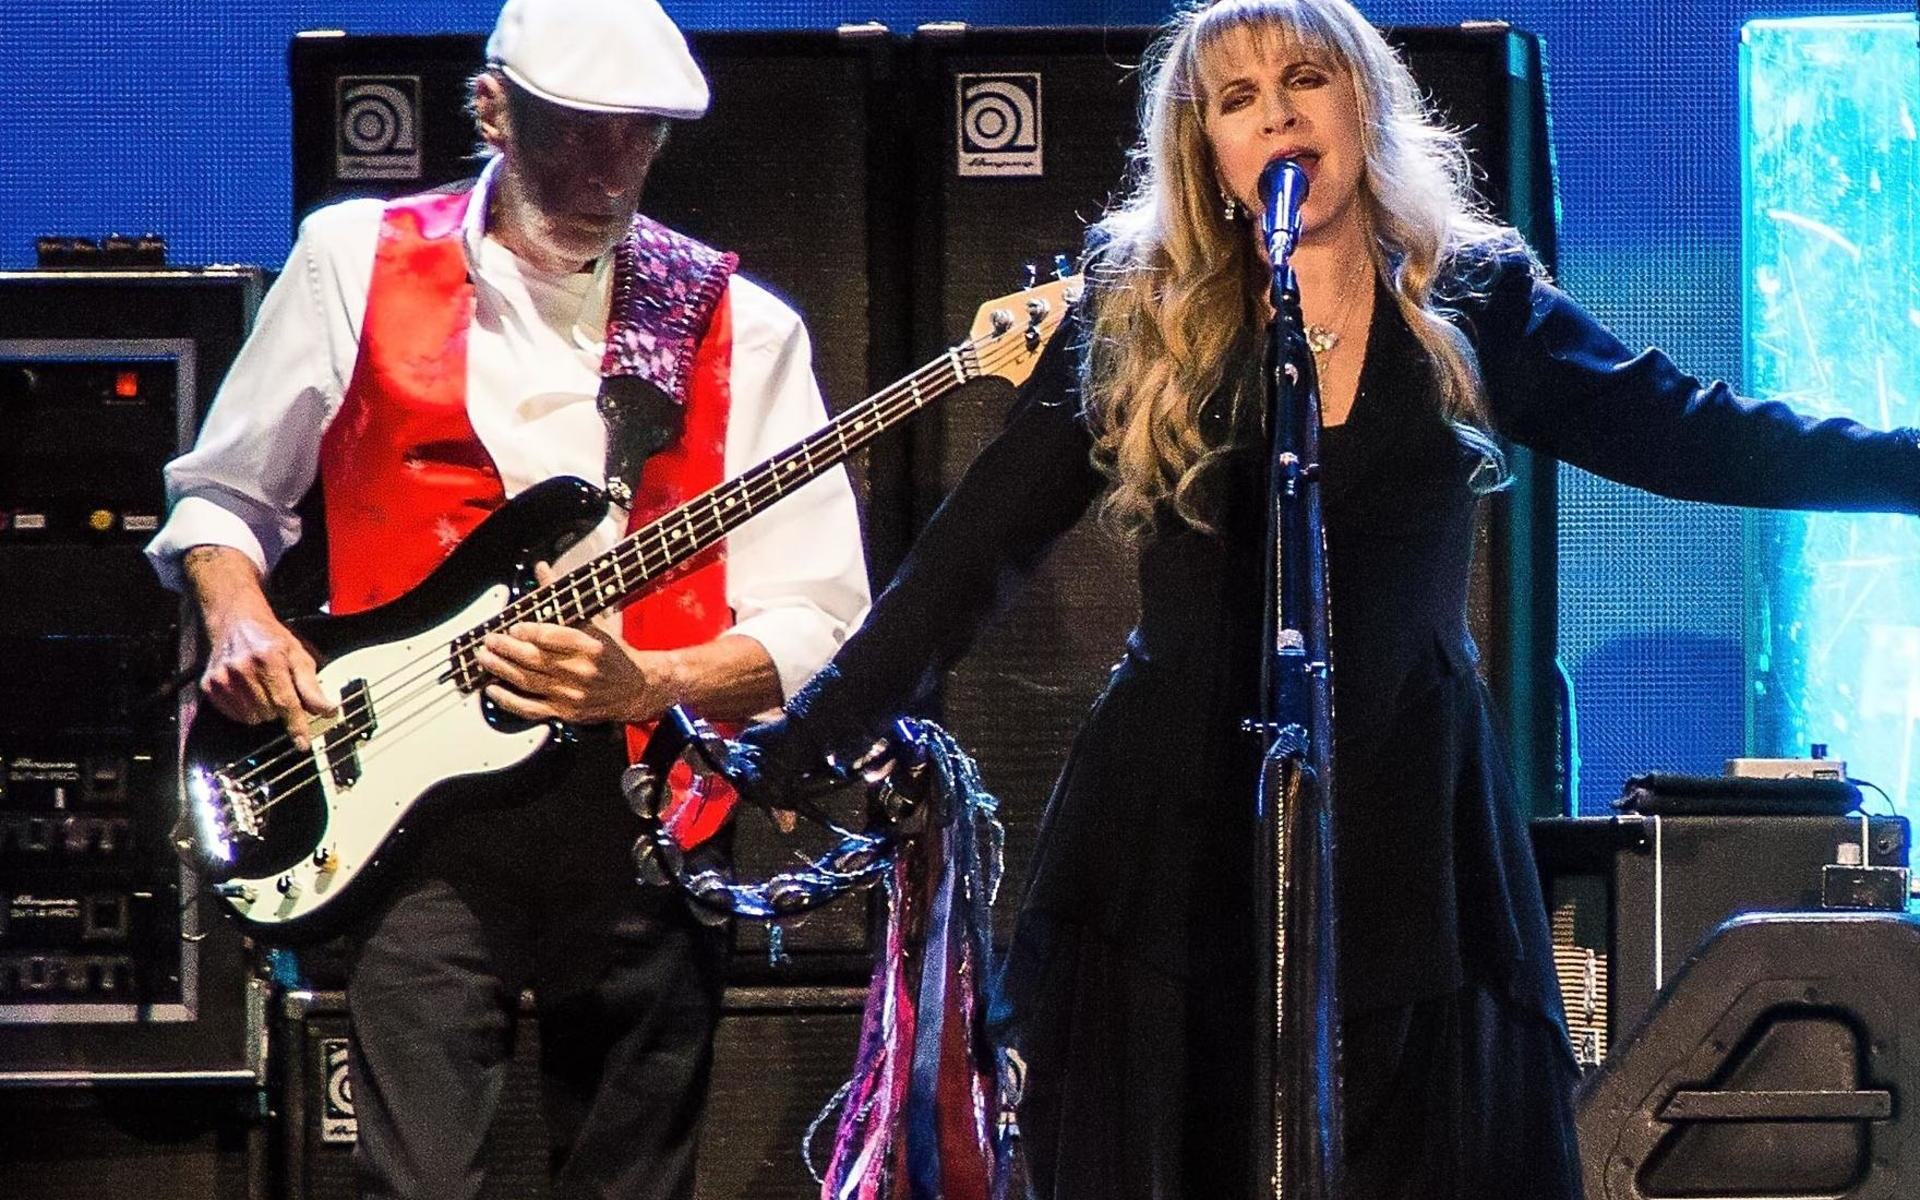 Fleetwood Mac Cleveland October 10 26 2018 at Quicken Loans Arena Tickets